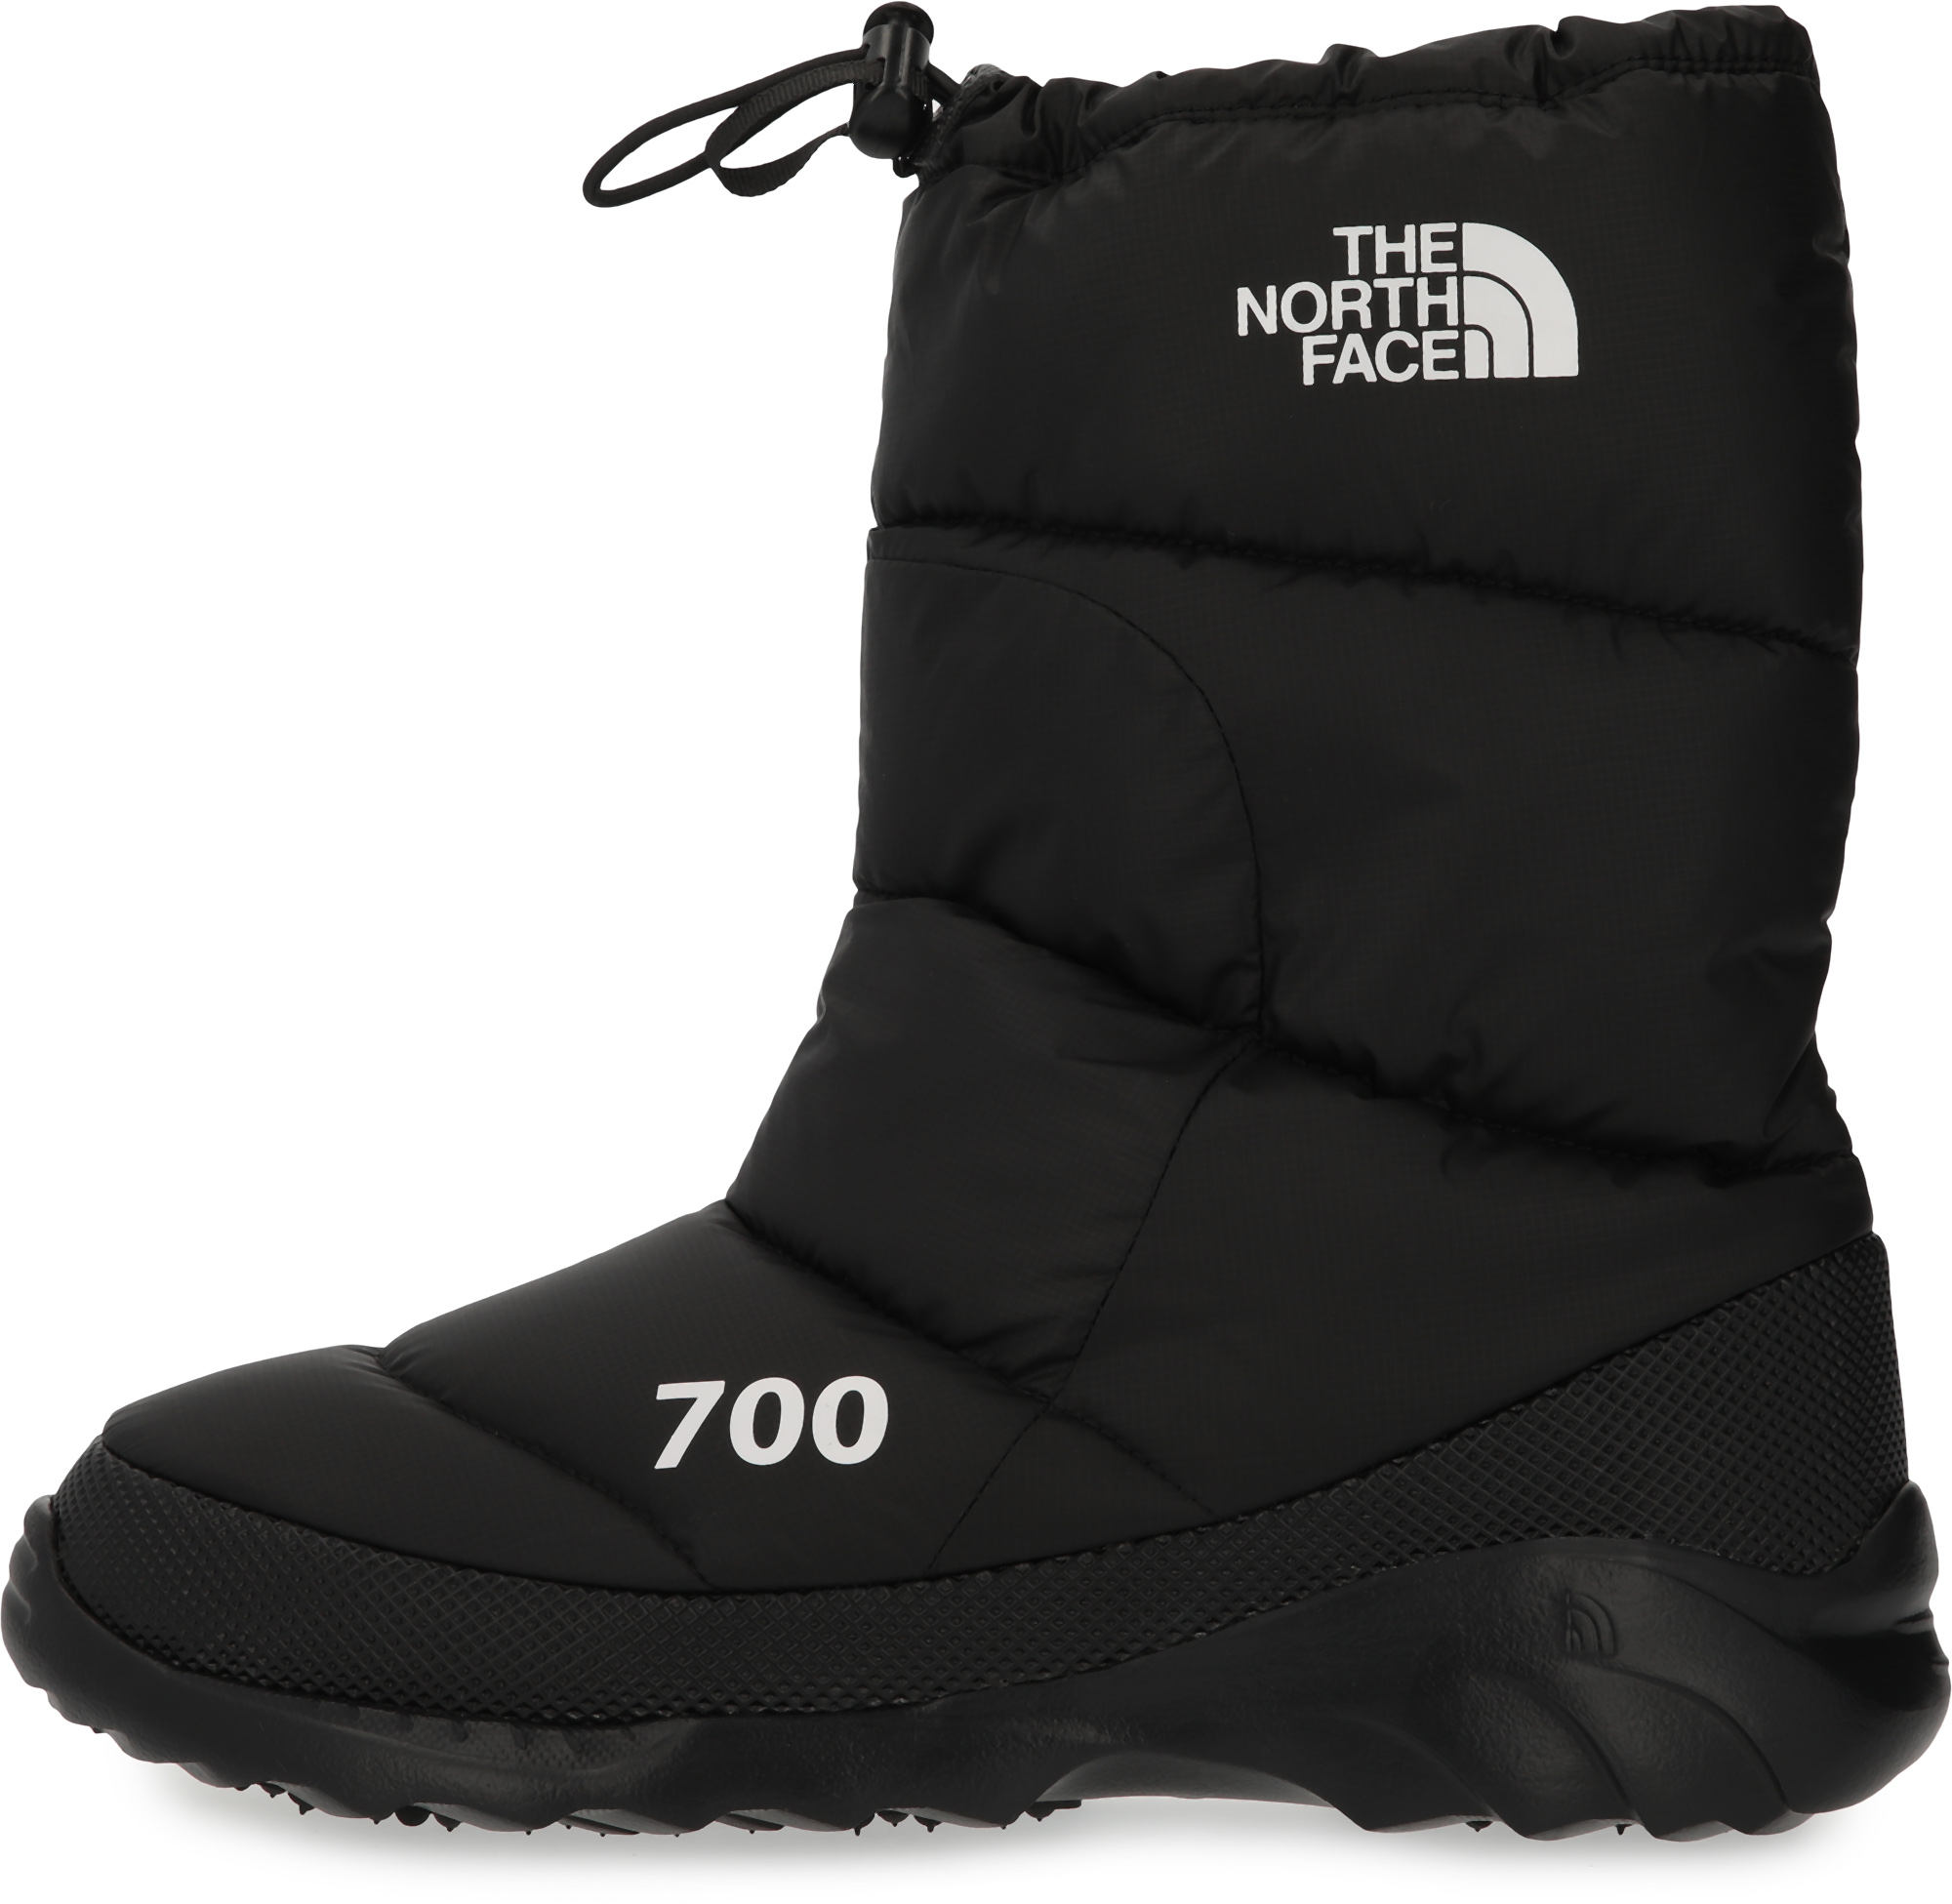 The North Face Сапоги утепленные мужские The North Face M Nuptse Bootie 700, размер 43